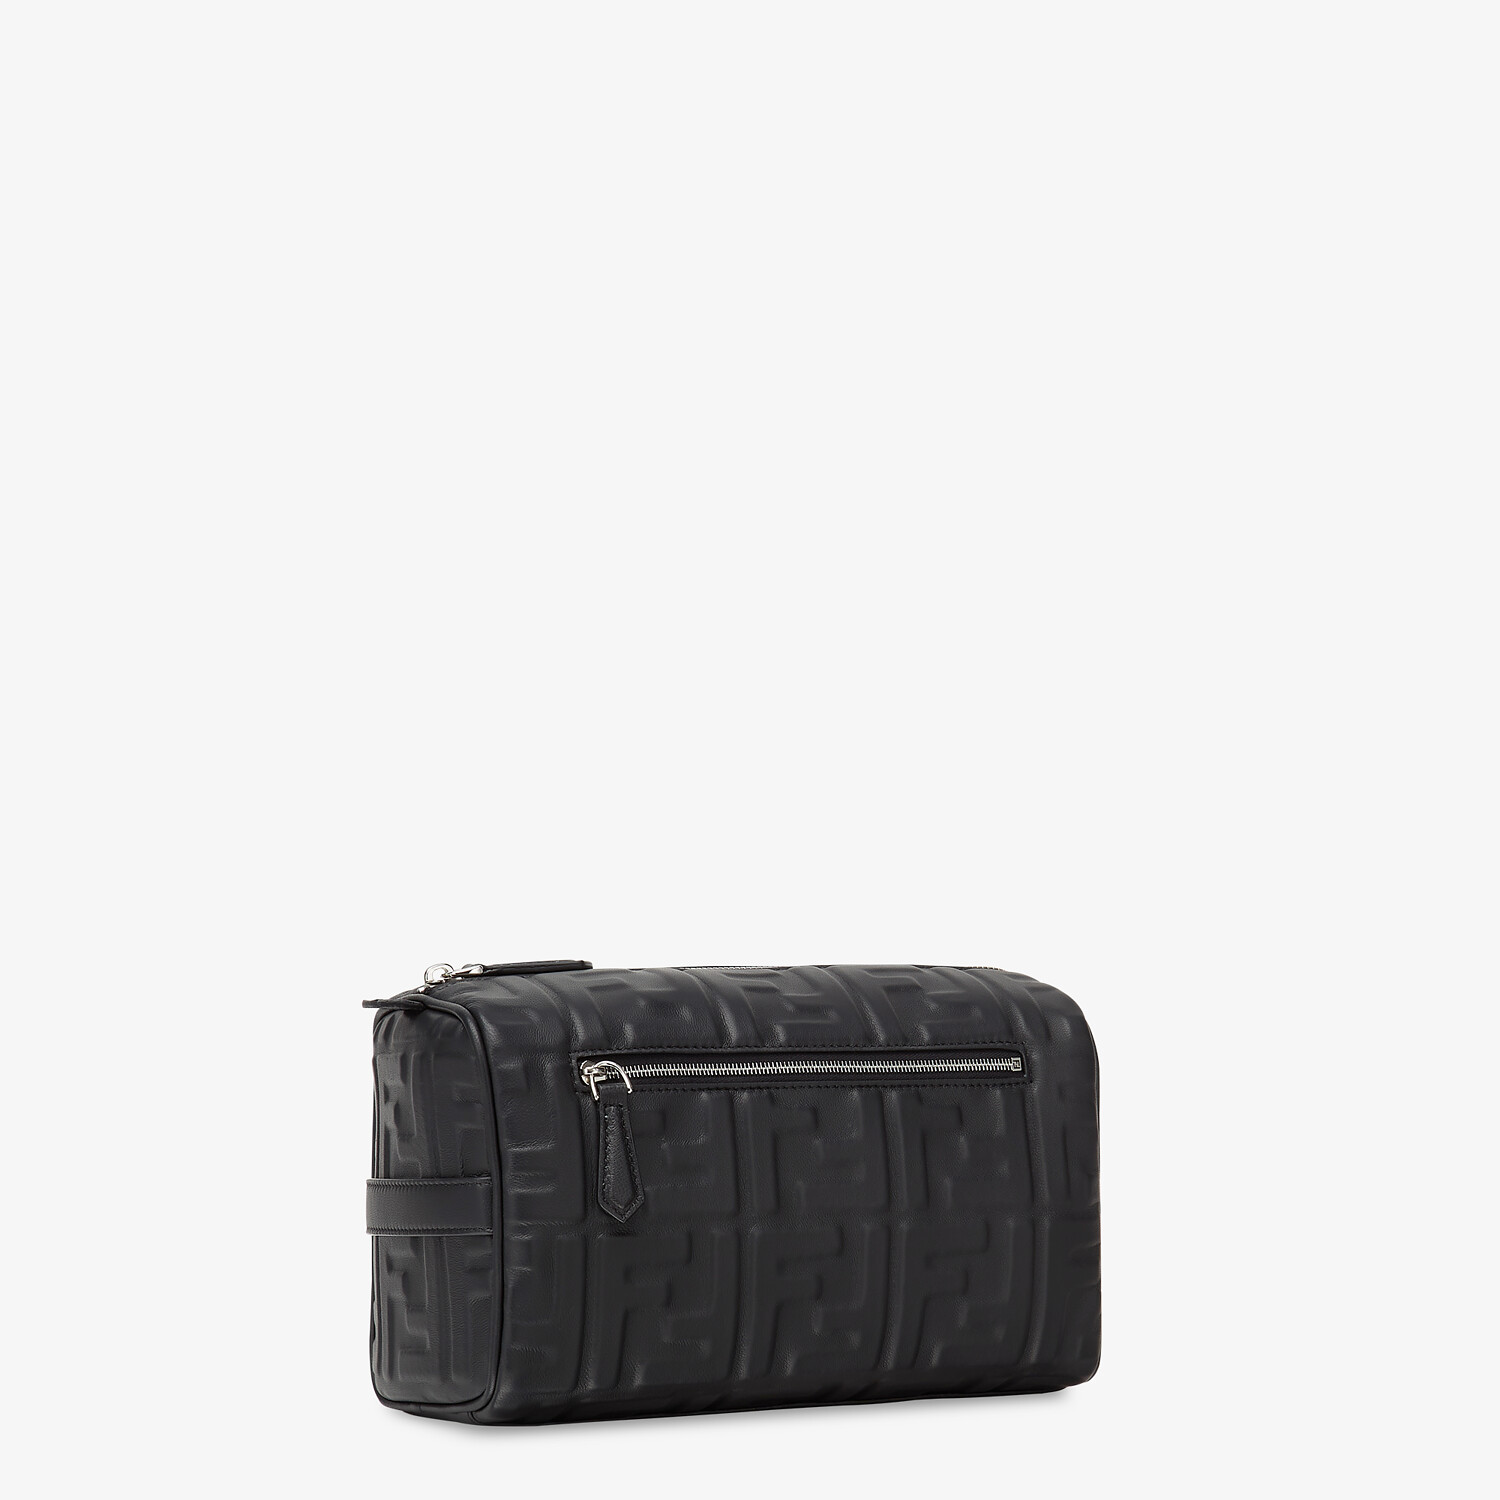 FENDI TRAVEL CASE - Black nappa leather toiletry case - view 2 detail